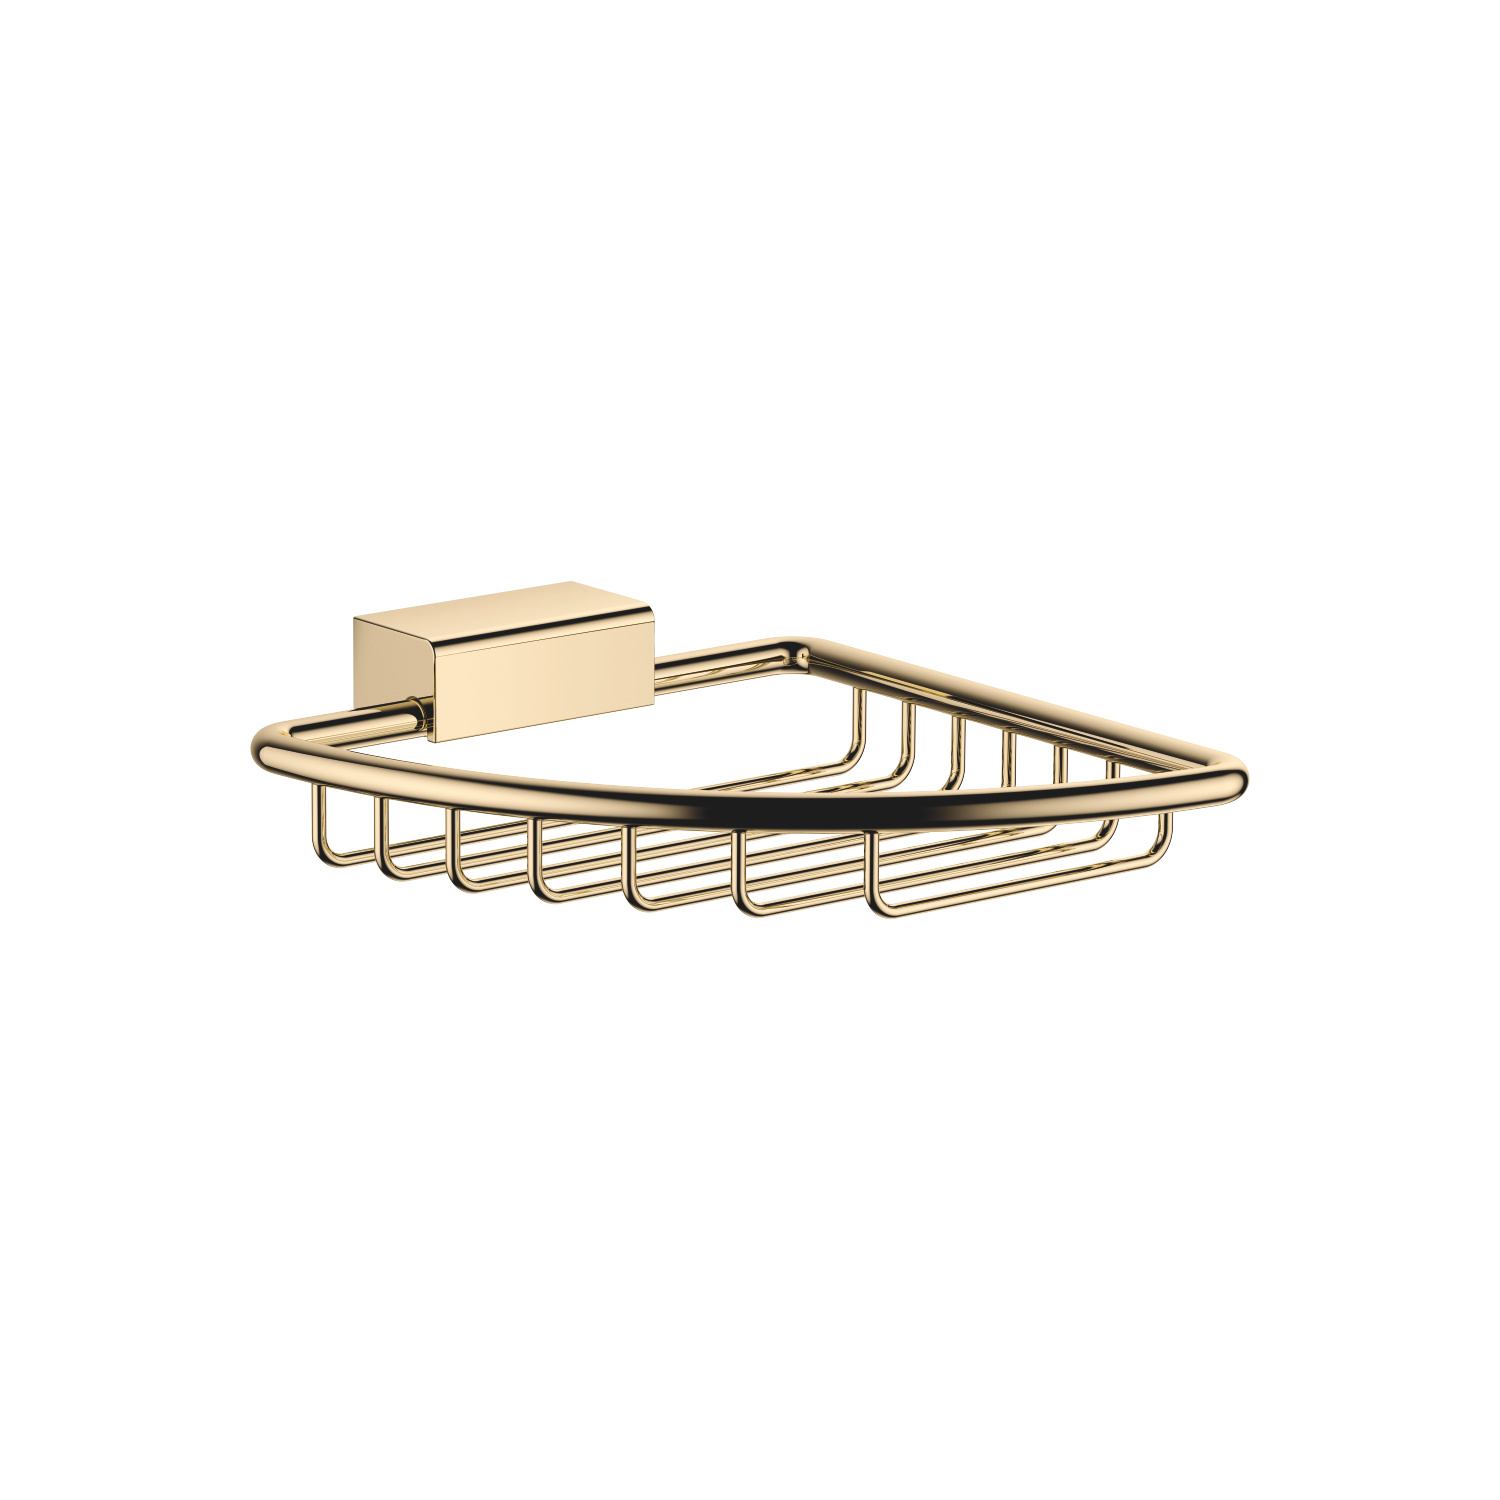 Soap basket for corner installation - Durabrass - 83 281 530-09